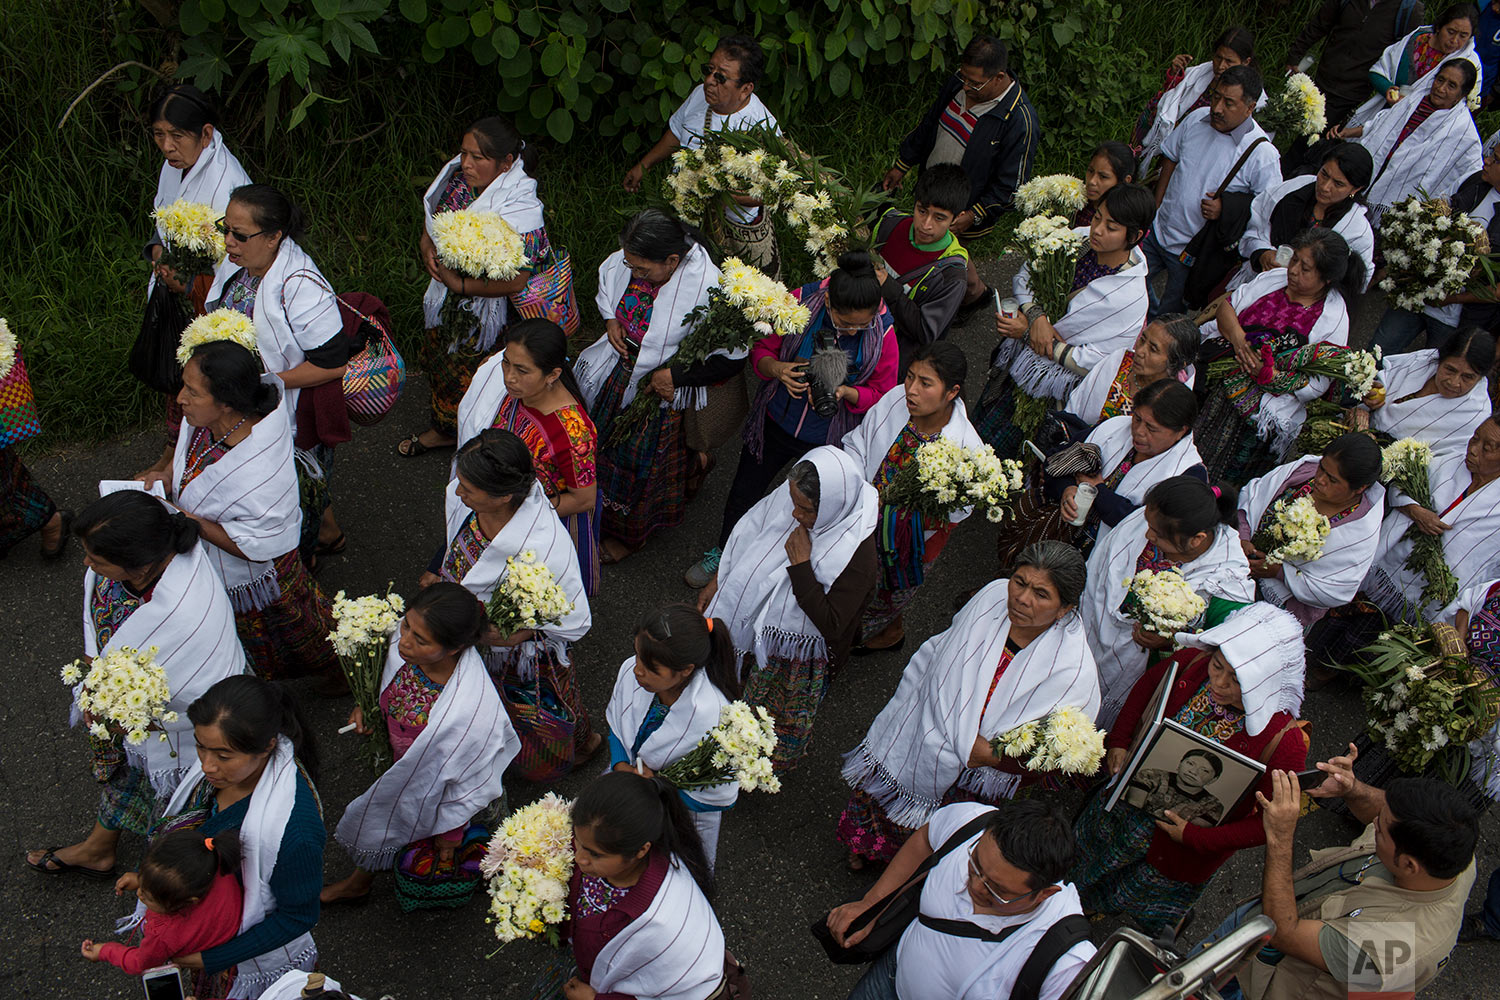 In this June 21, 2018 photo, women walk behind coffins during the funeral procession for 172 unidentified people who were found buried in a mass grave at what was once a military camp, to properly bury them in the same area where they were discovered in San Juan Comalapa, Guatemala. (AP Photo/Rodrigo Abd)